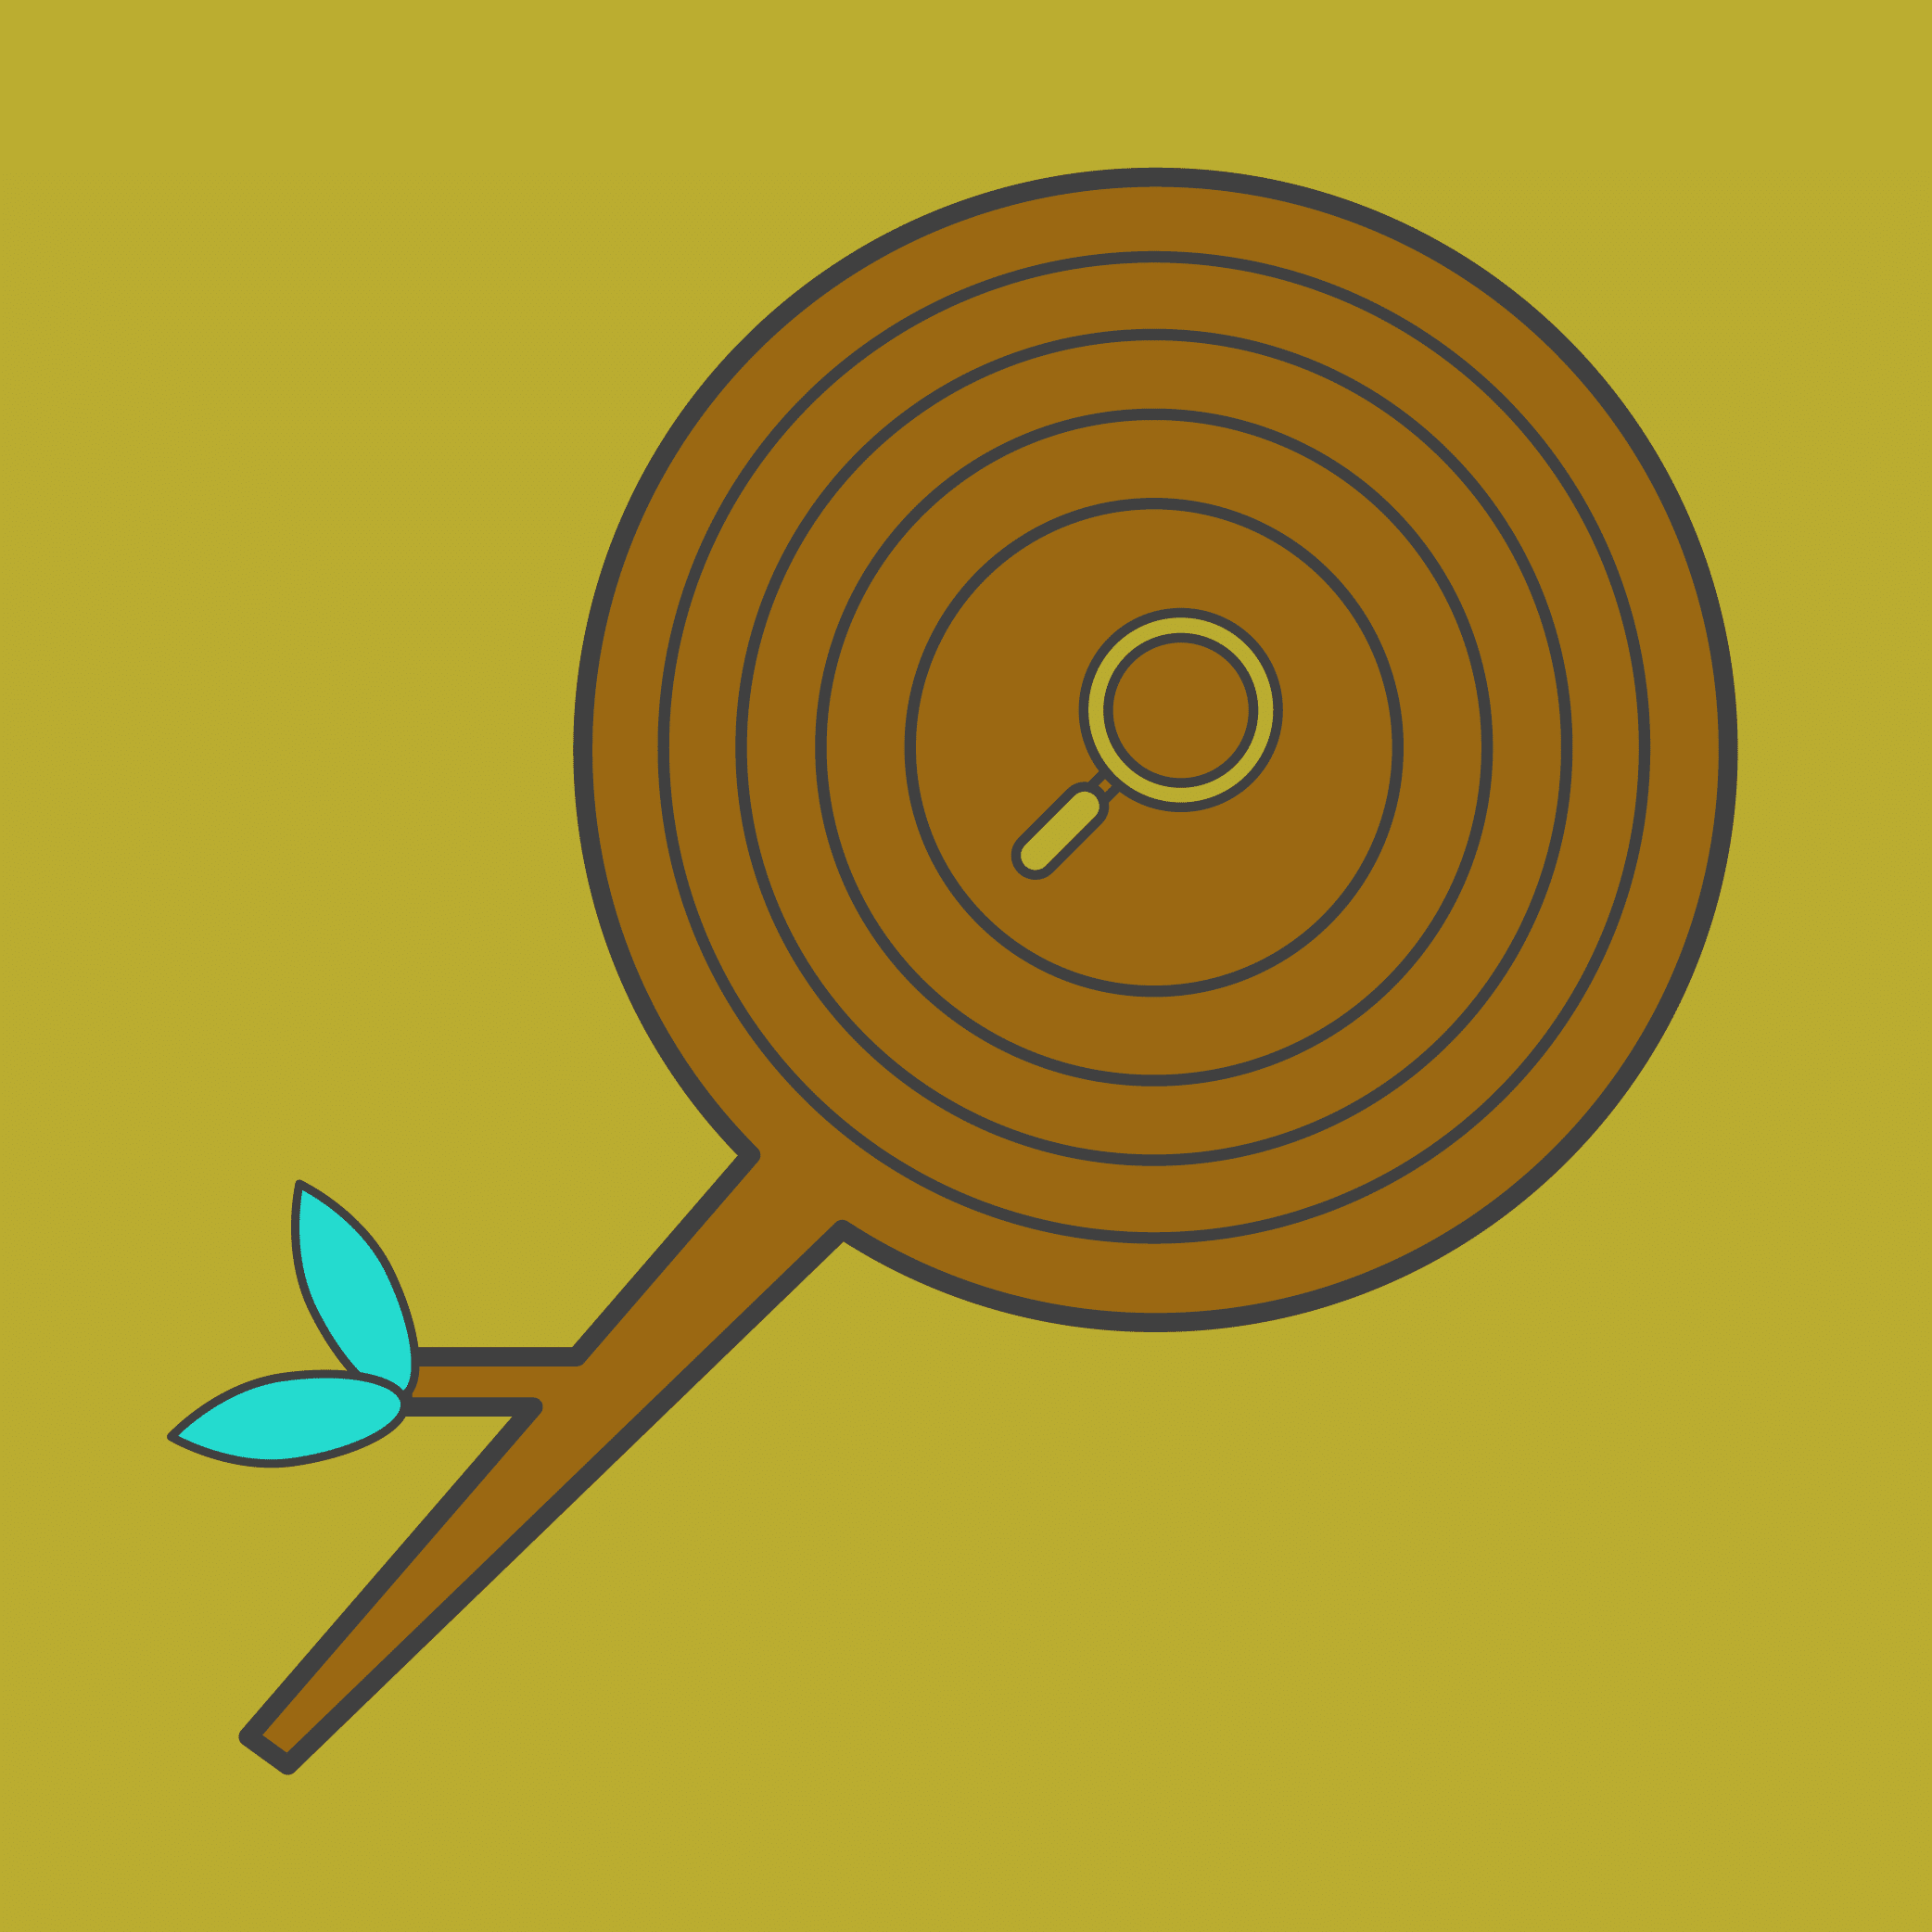 Illustration of a wooden search icon with growth rings.